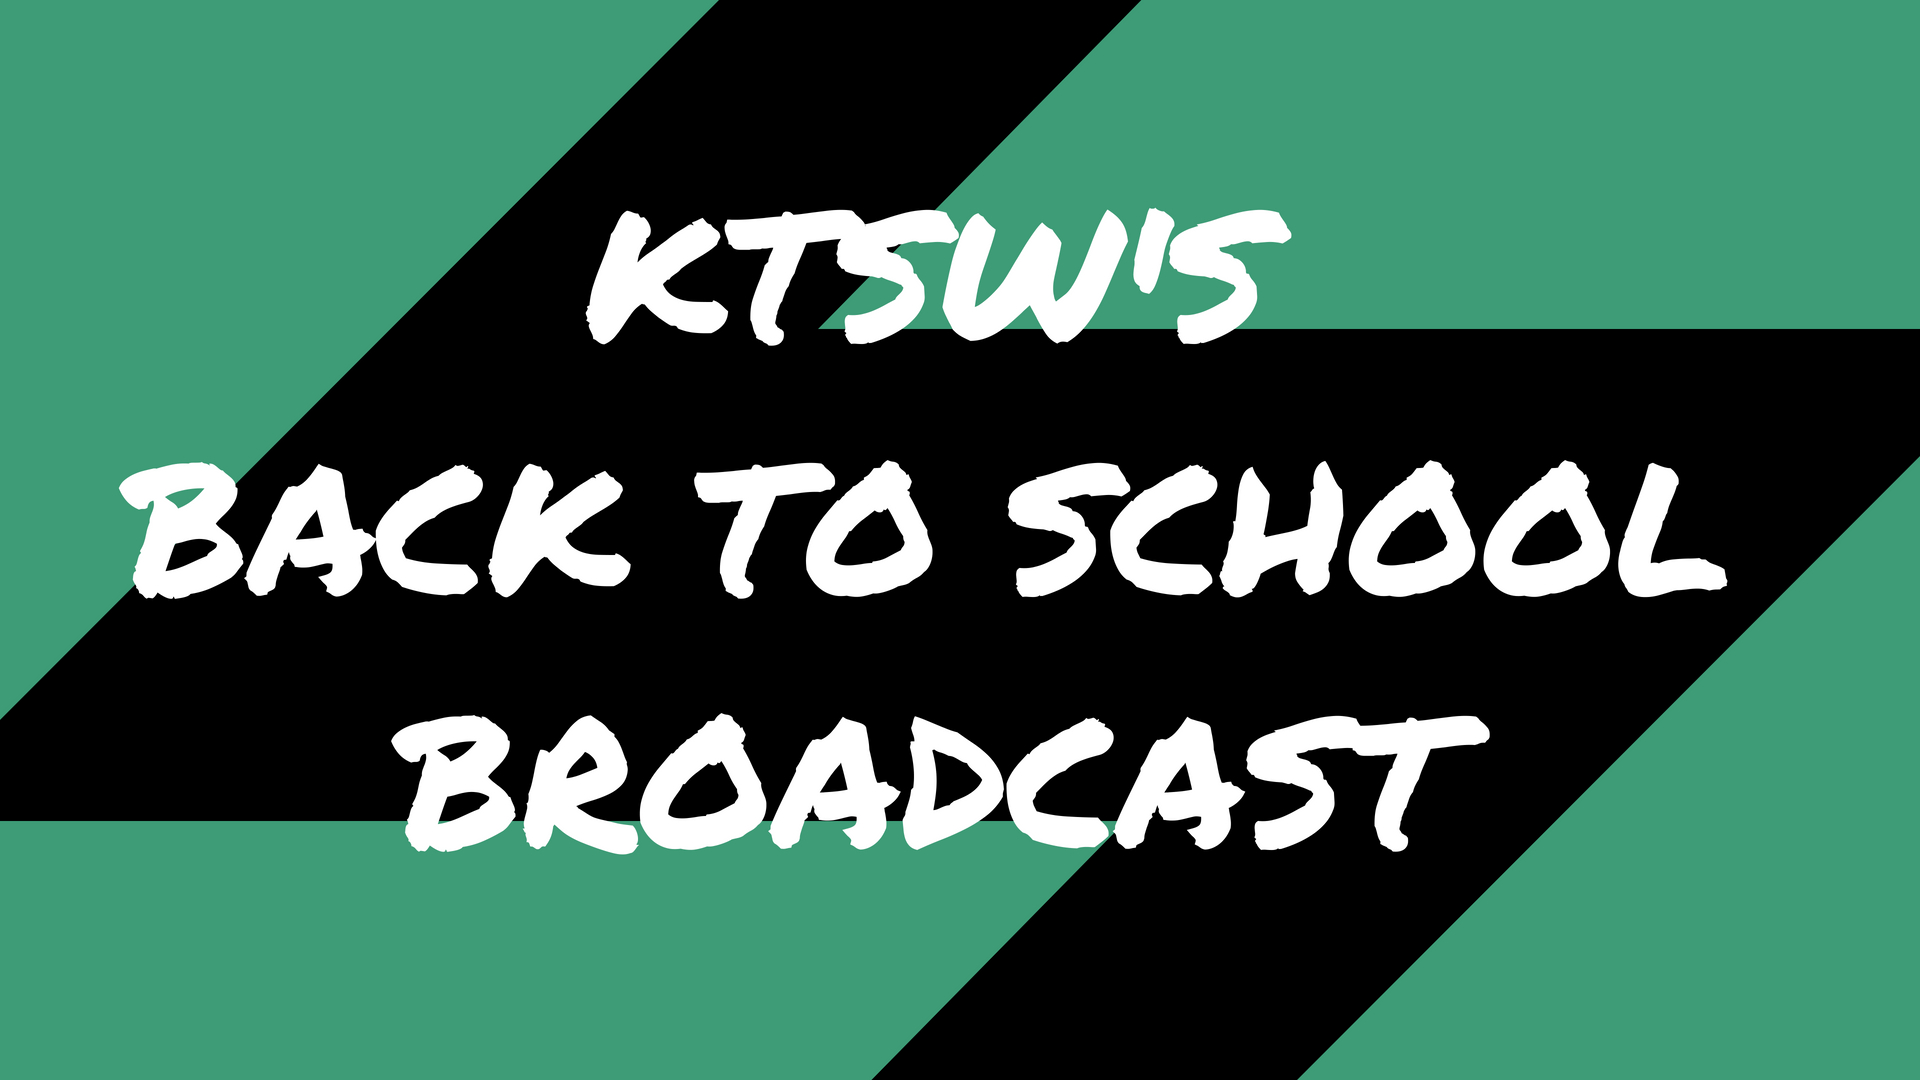 """KTSW's Back to School Broadcast"" in white font on a blue and black background."